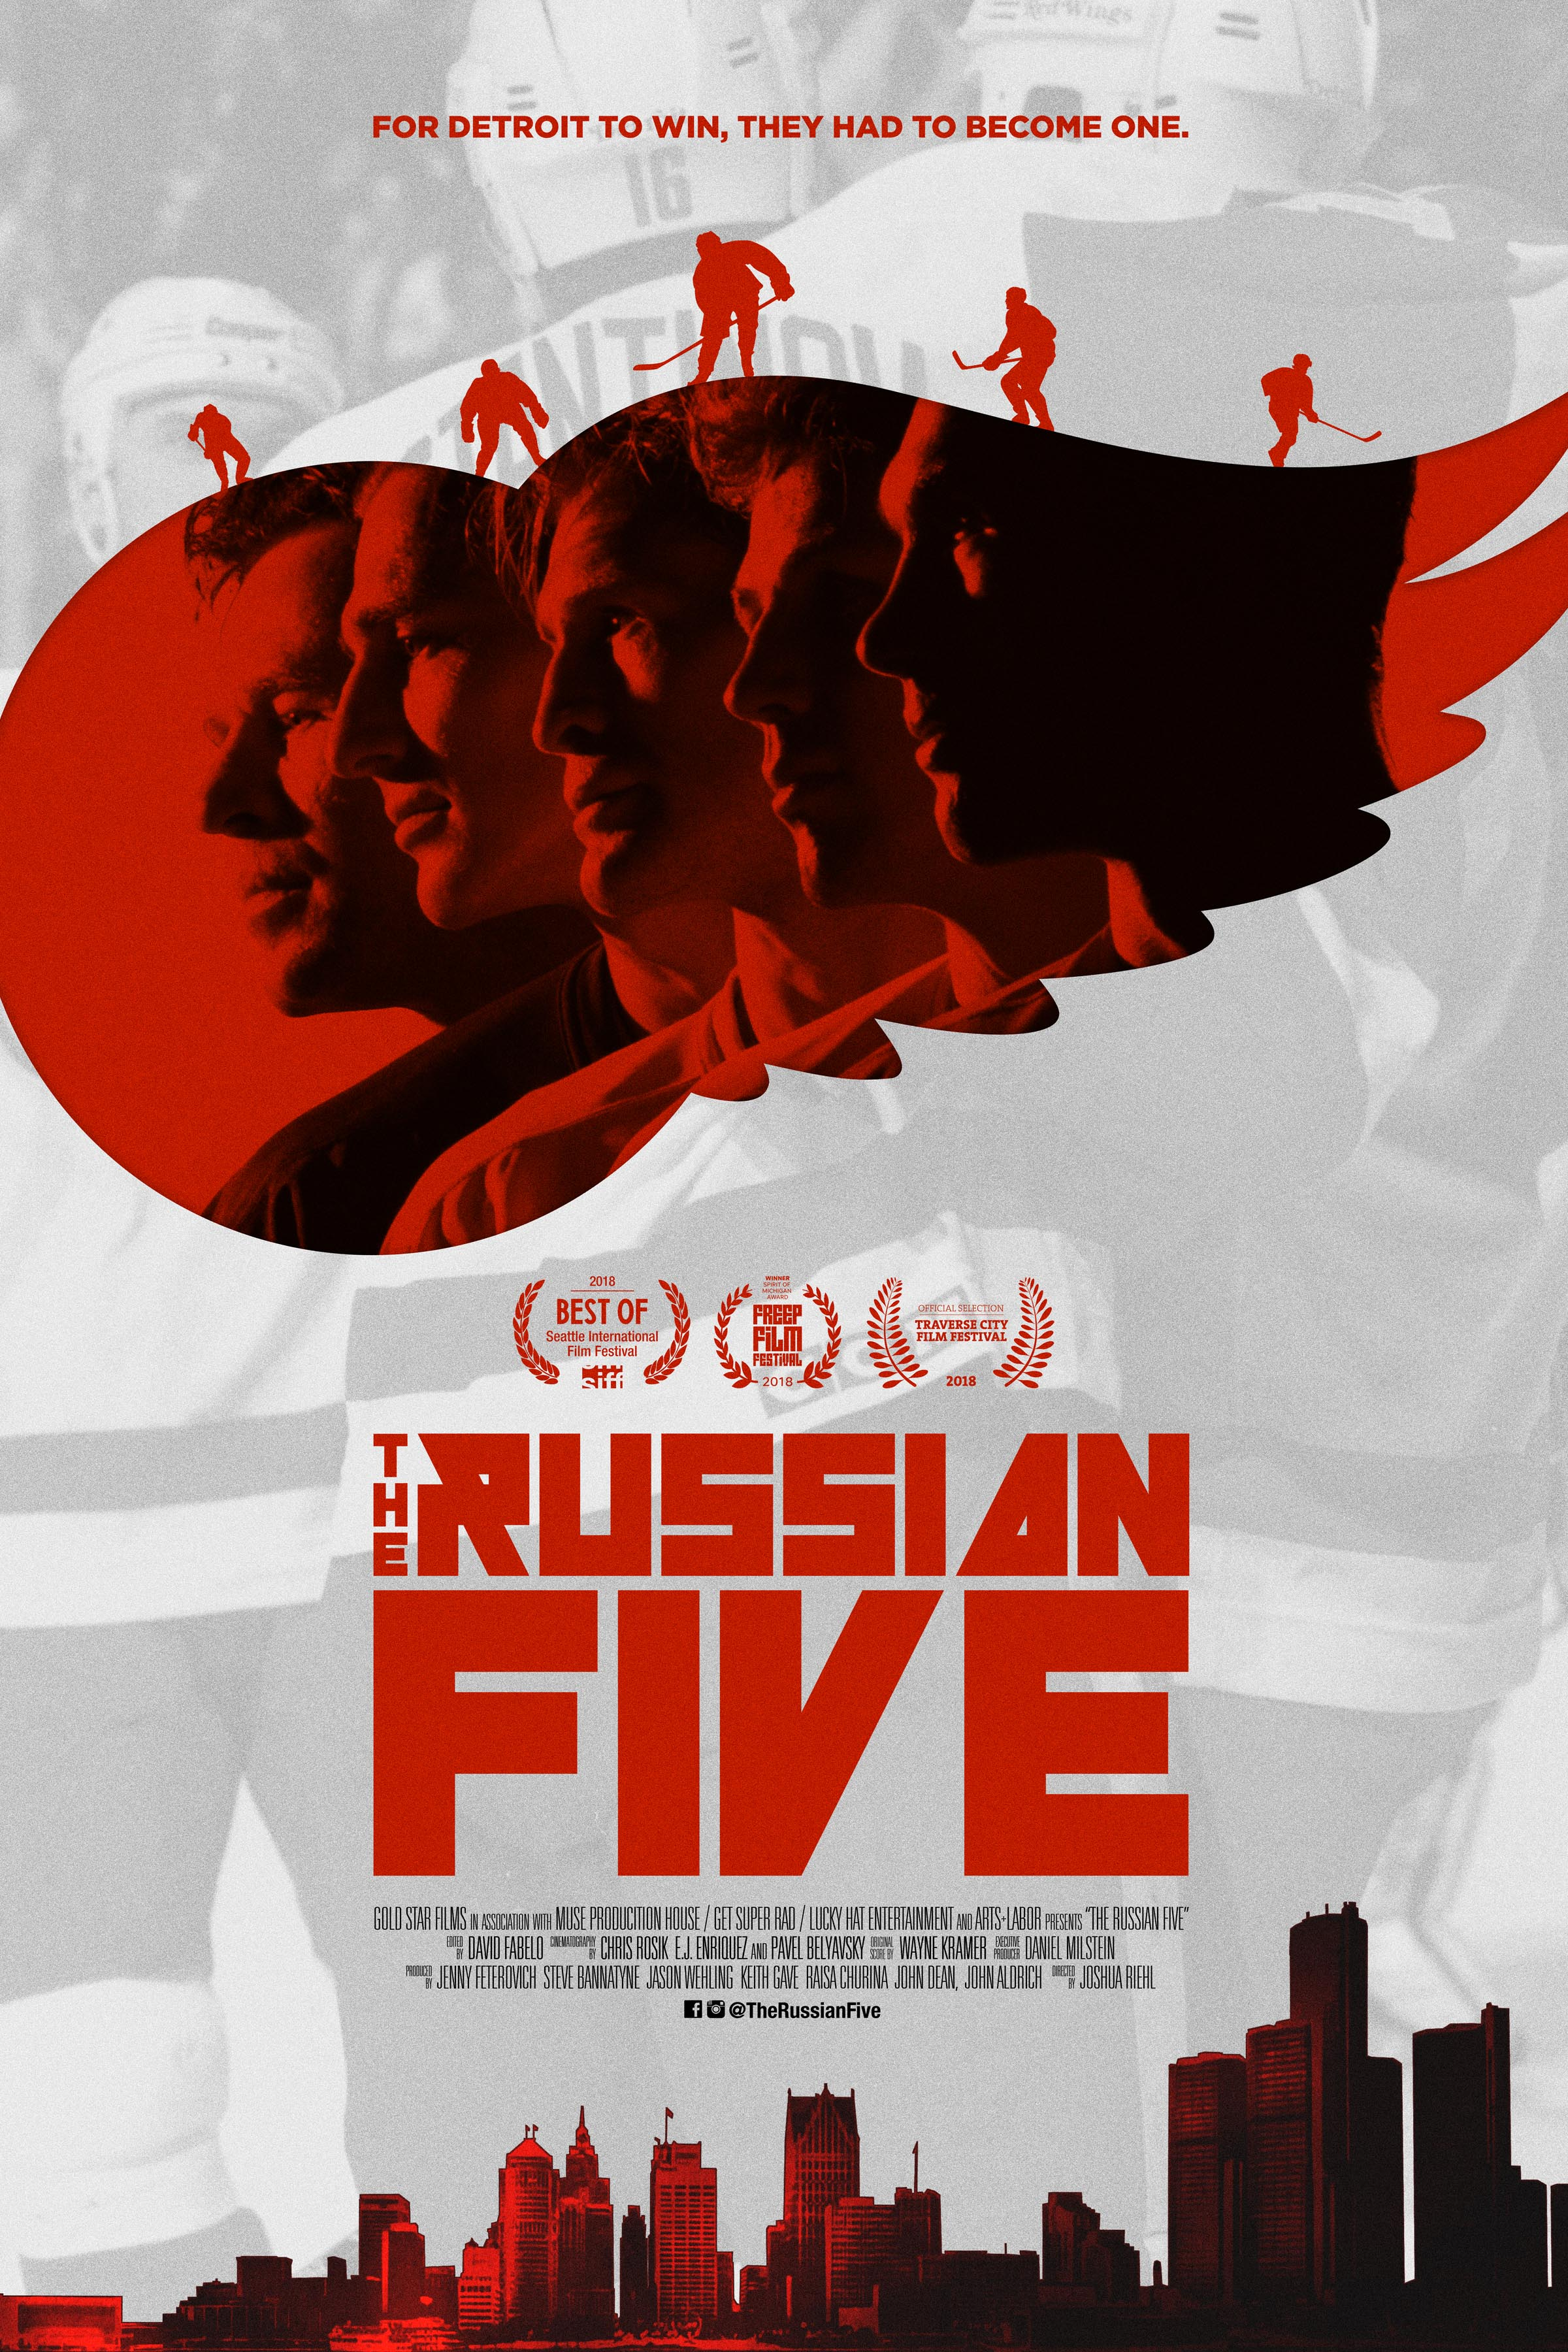 Nonton film streaming The Russian Five Online Sub Indo | Layarkaca21 indonesia